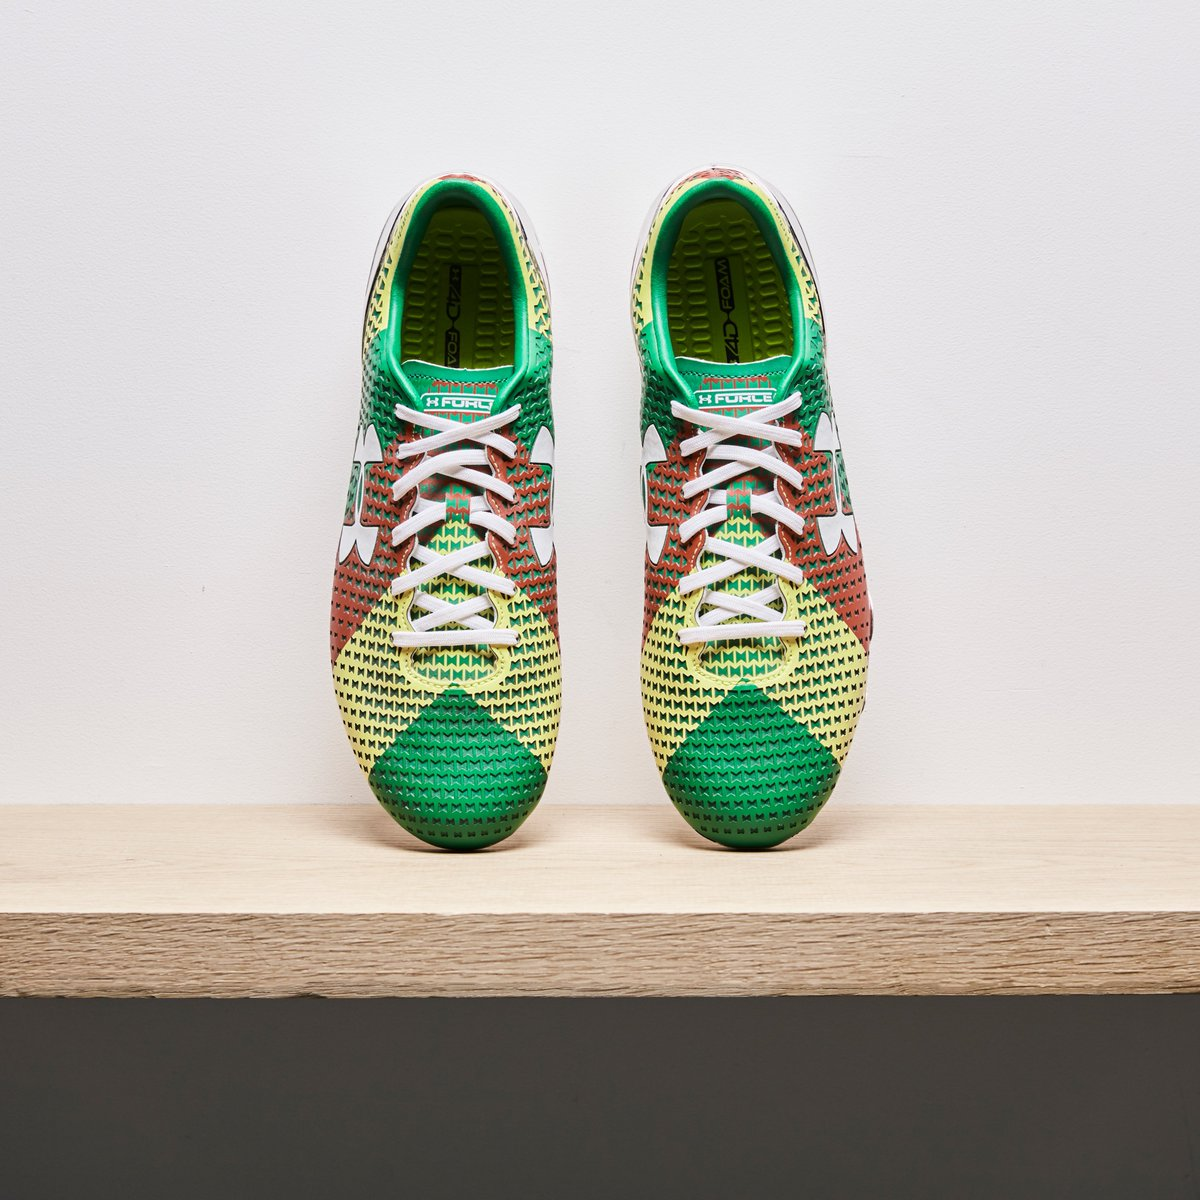 11e5bf6115b6  ProDirectArchive  The Under Armour Clutchfit Force from 2014. A   AssouEkotto special.